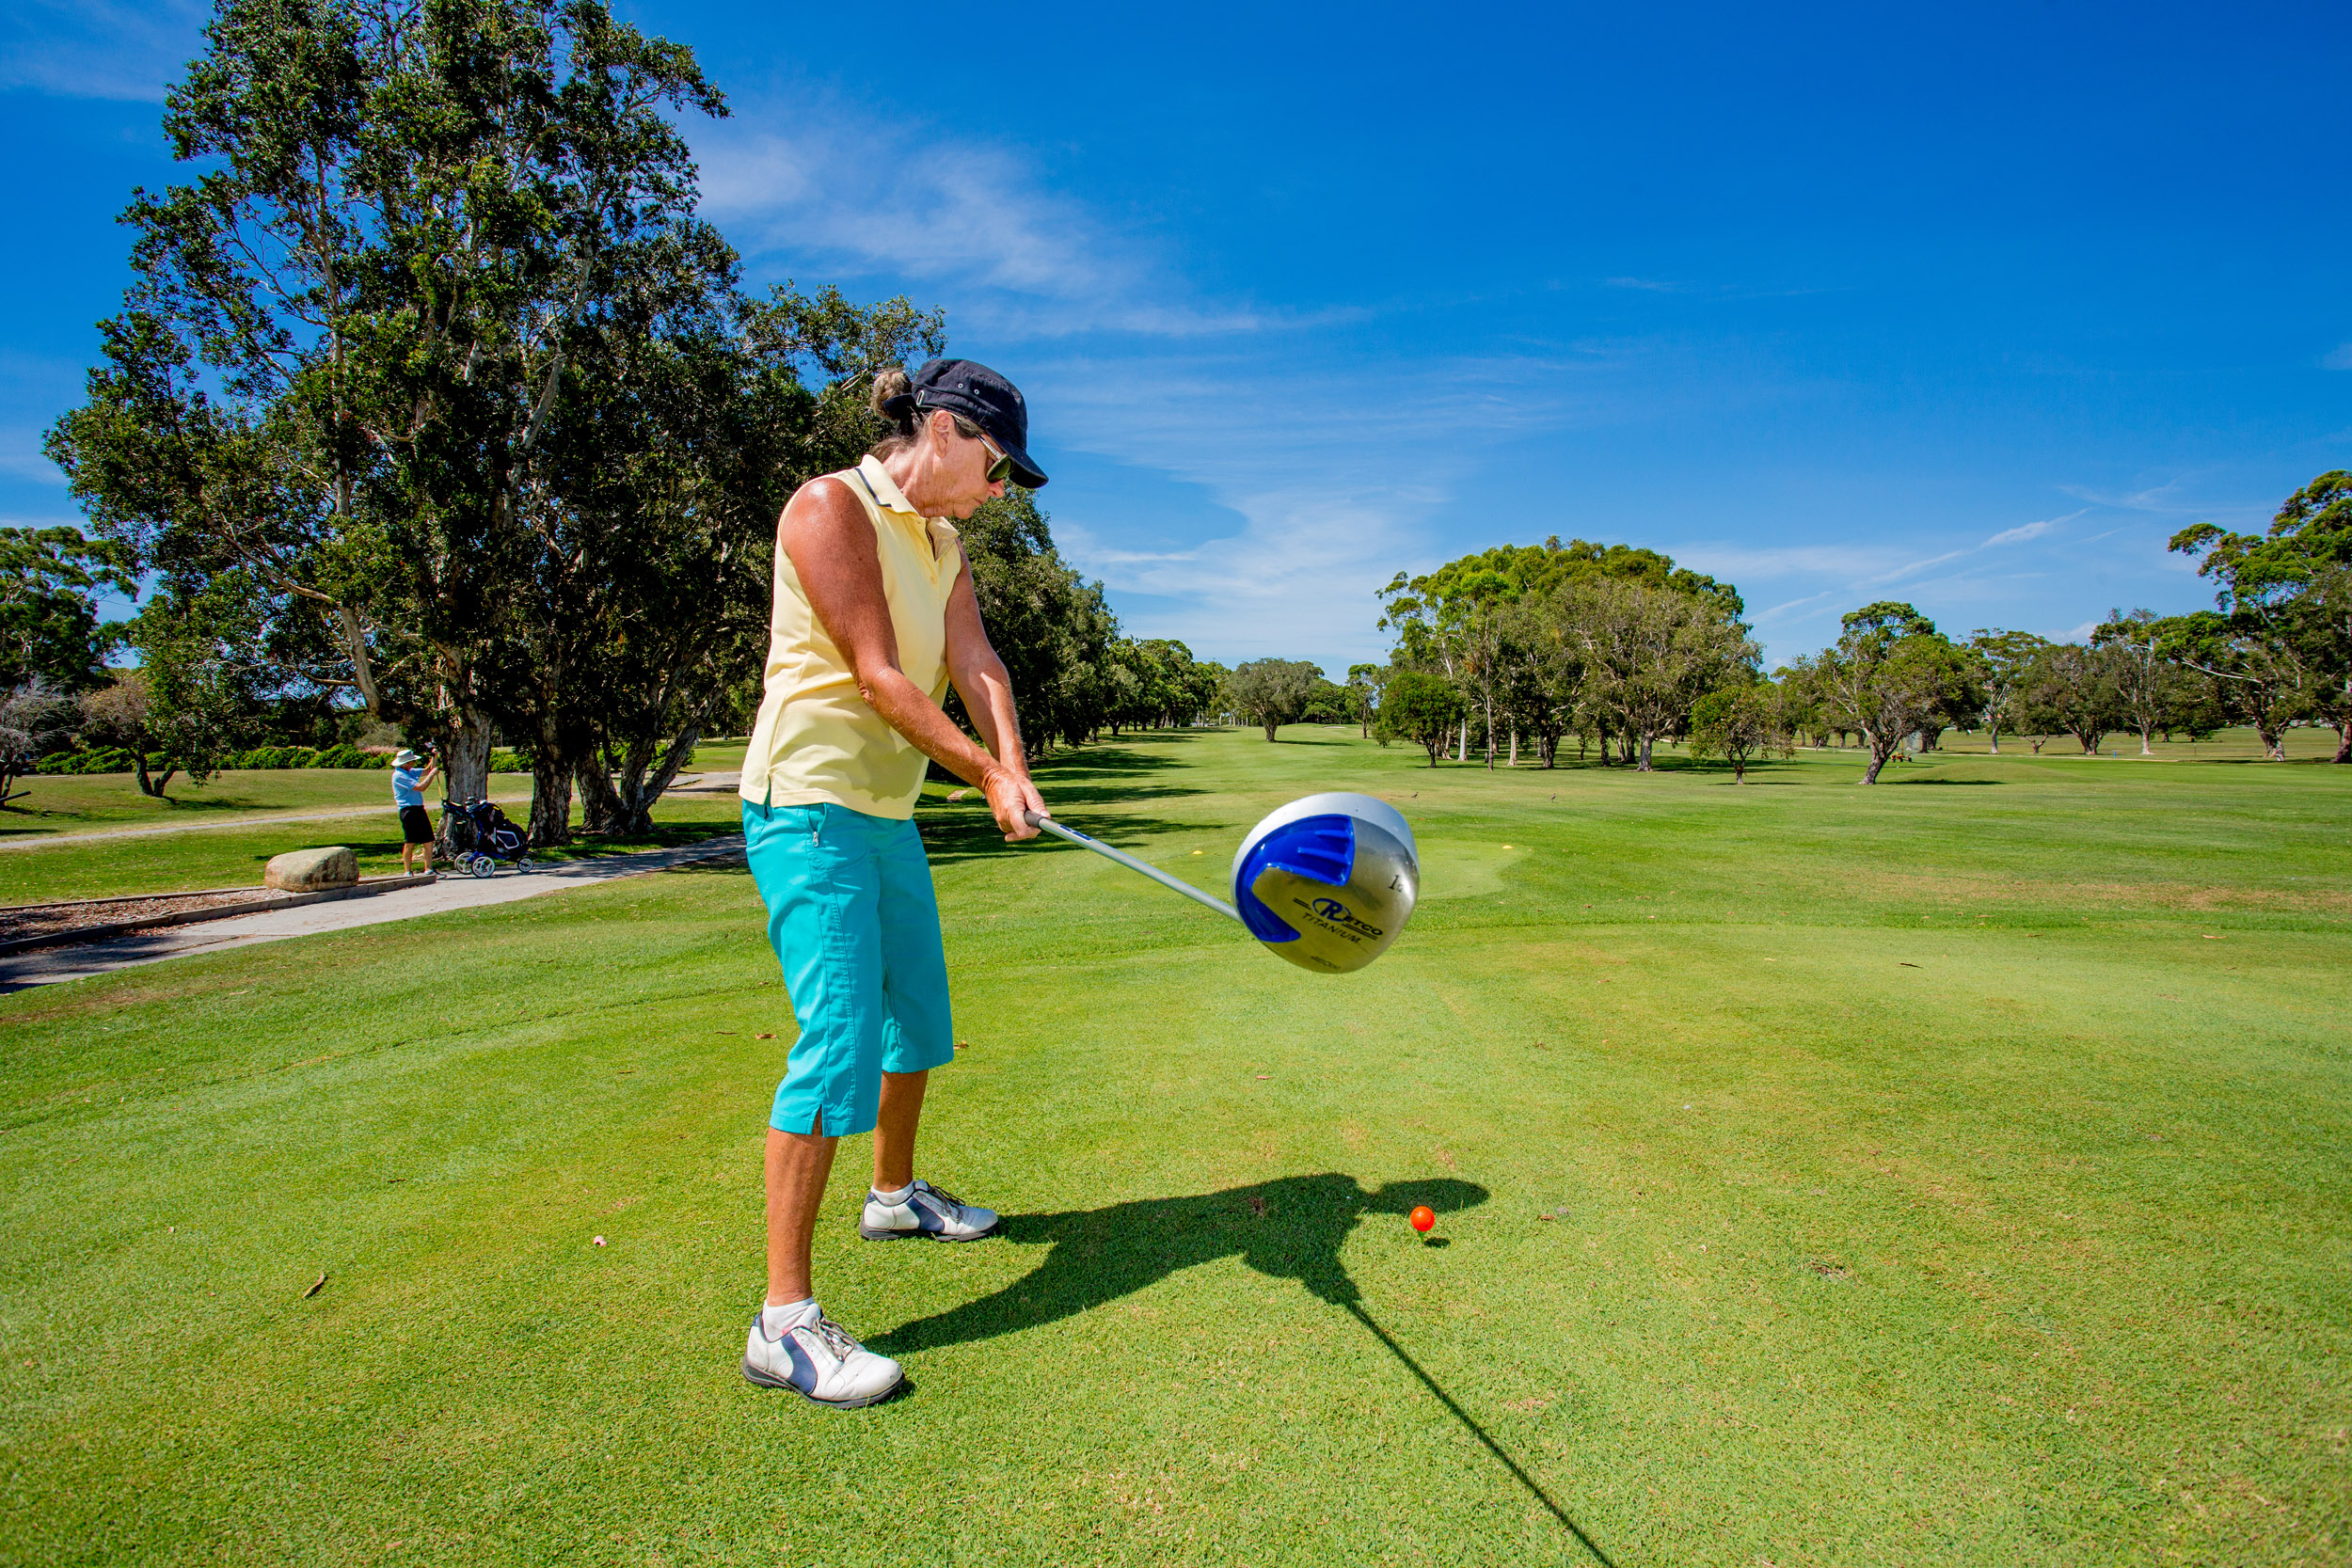 golf-photography-commercial.jpg